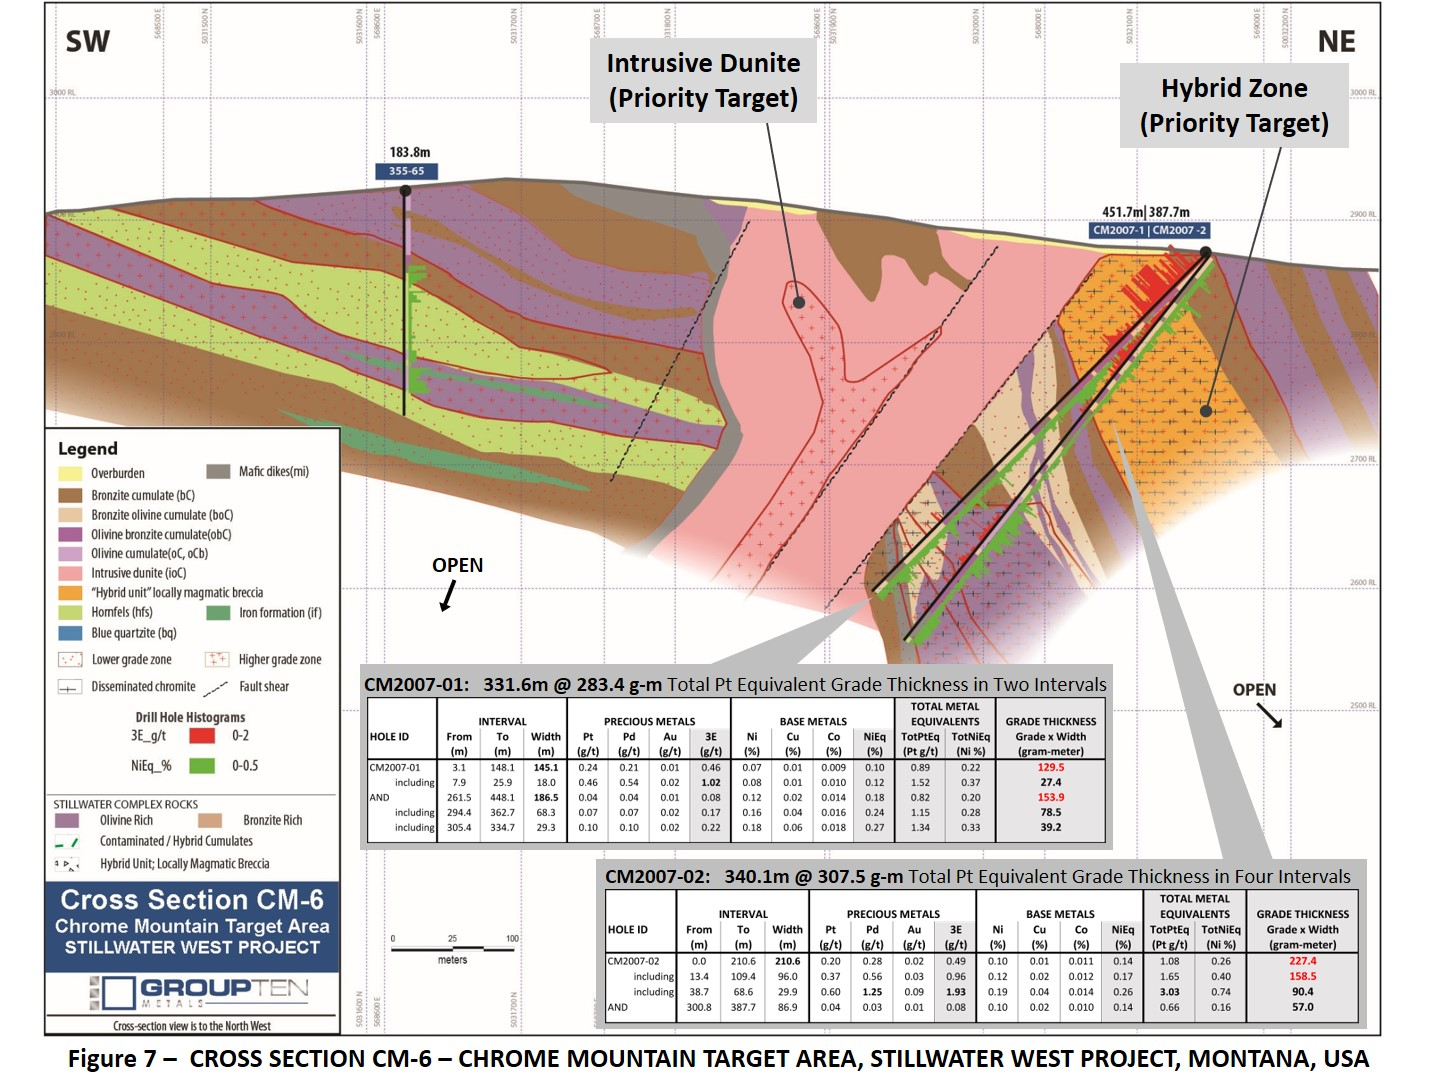 Figure 7 – Cross Section CM-6 – Chrome Mountain Target Area, Stillwater West Project, Montana, USA